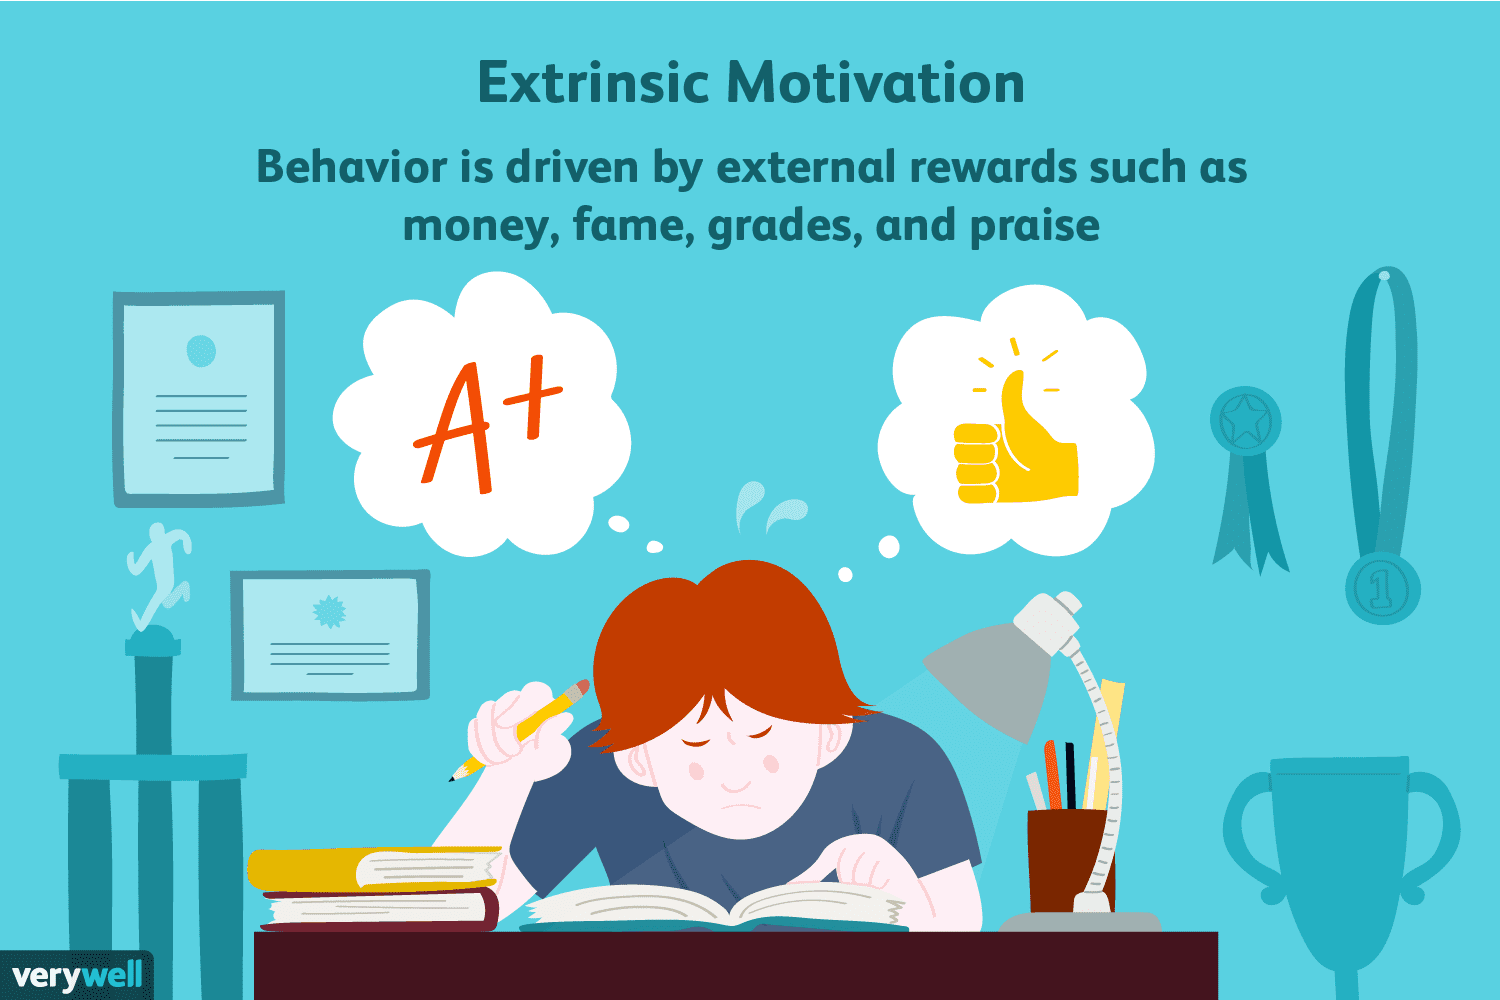 What Is Extrinsic Motivation and How Does It Work?